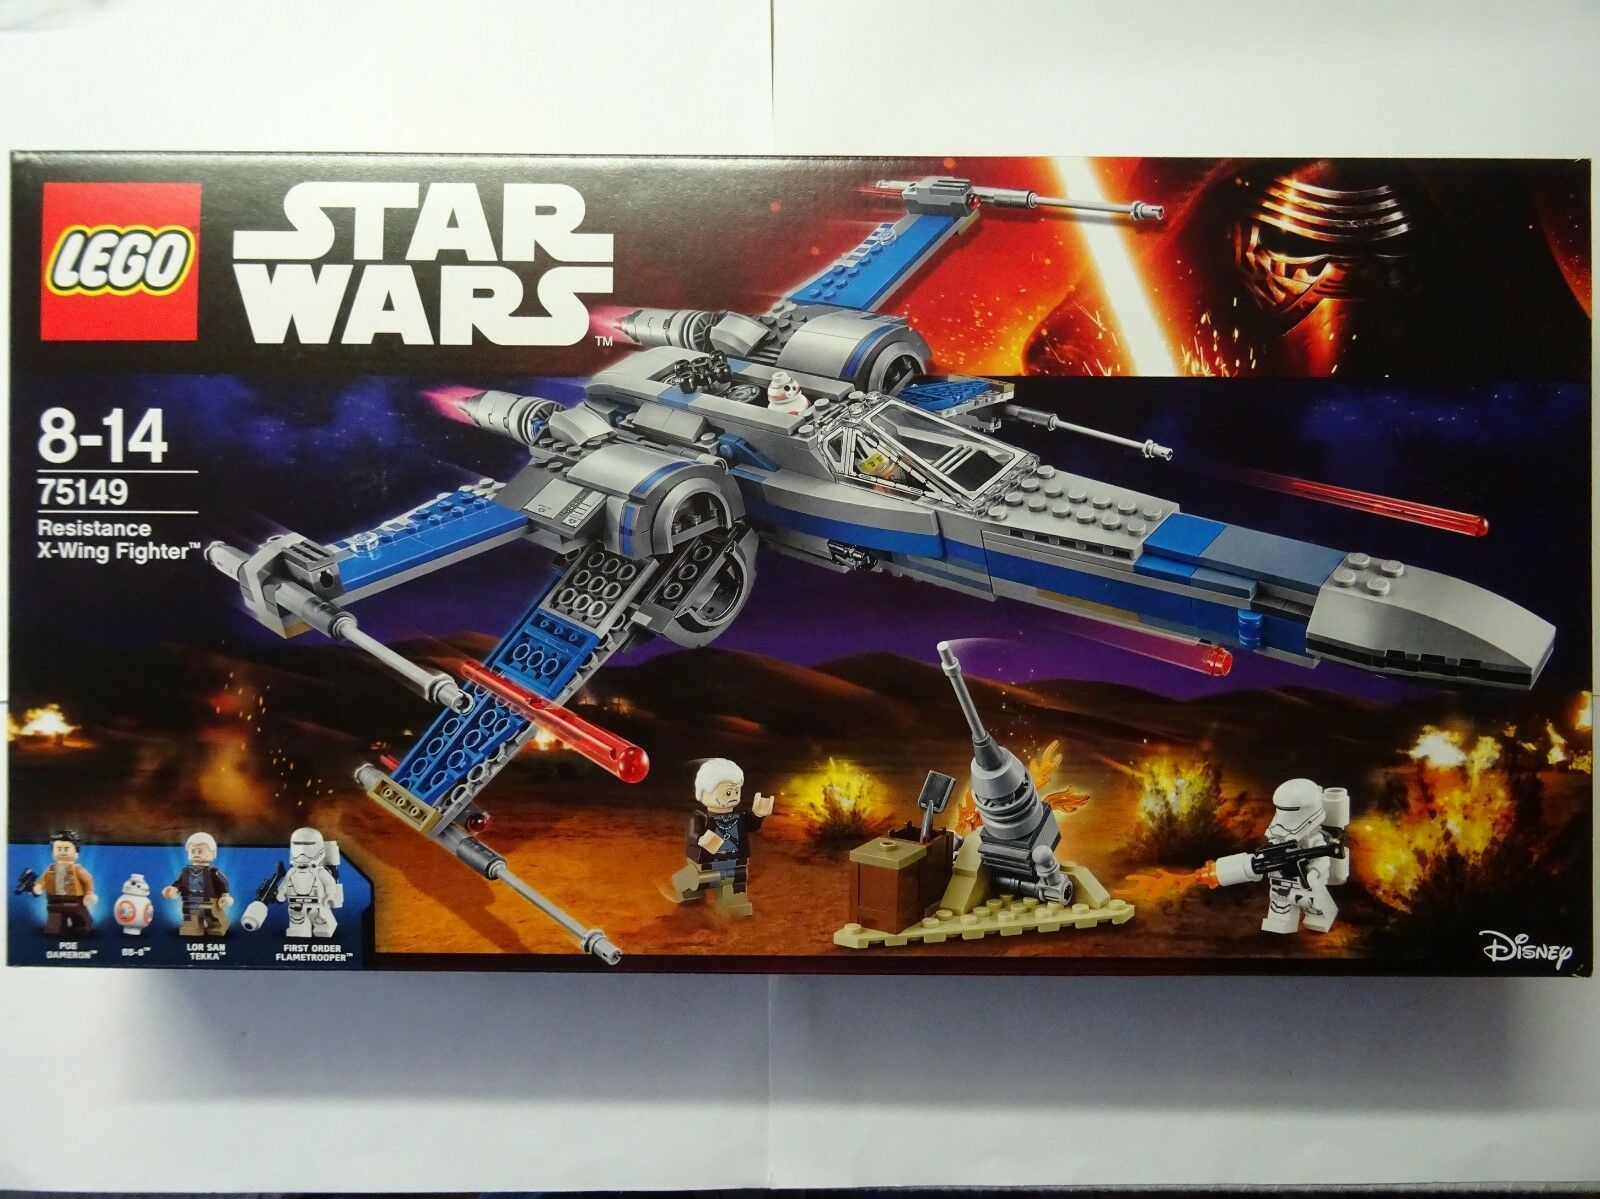 Lego Star Wars - (Boite) - Resistance X-Wing Fighter - N°75149 - Neuf